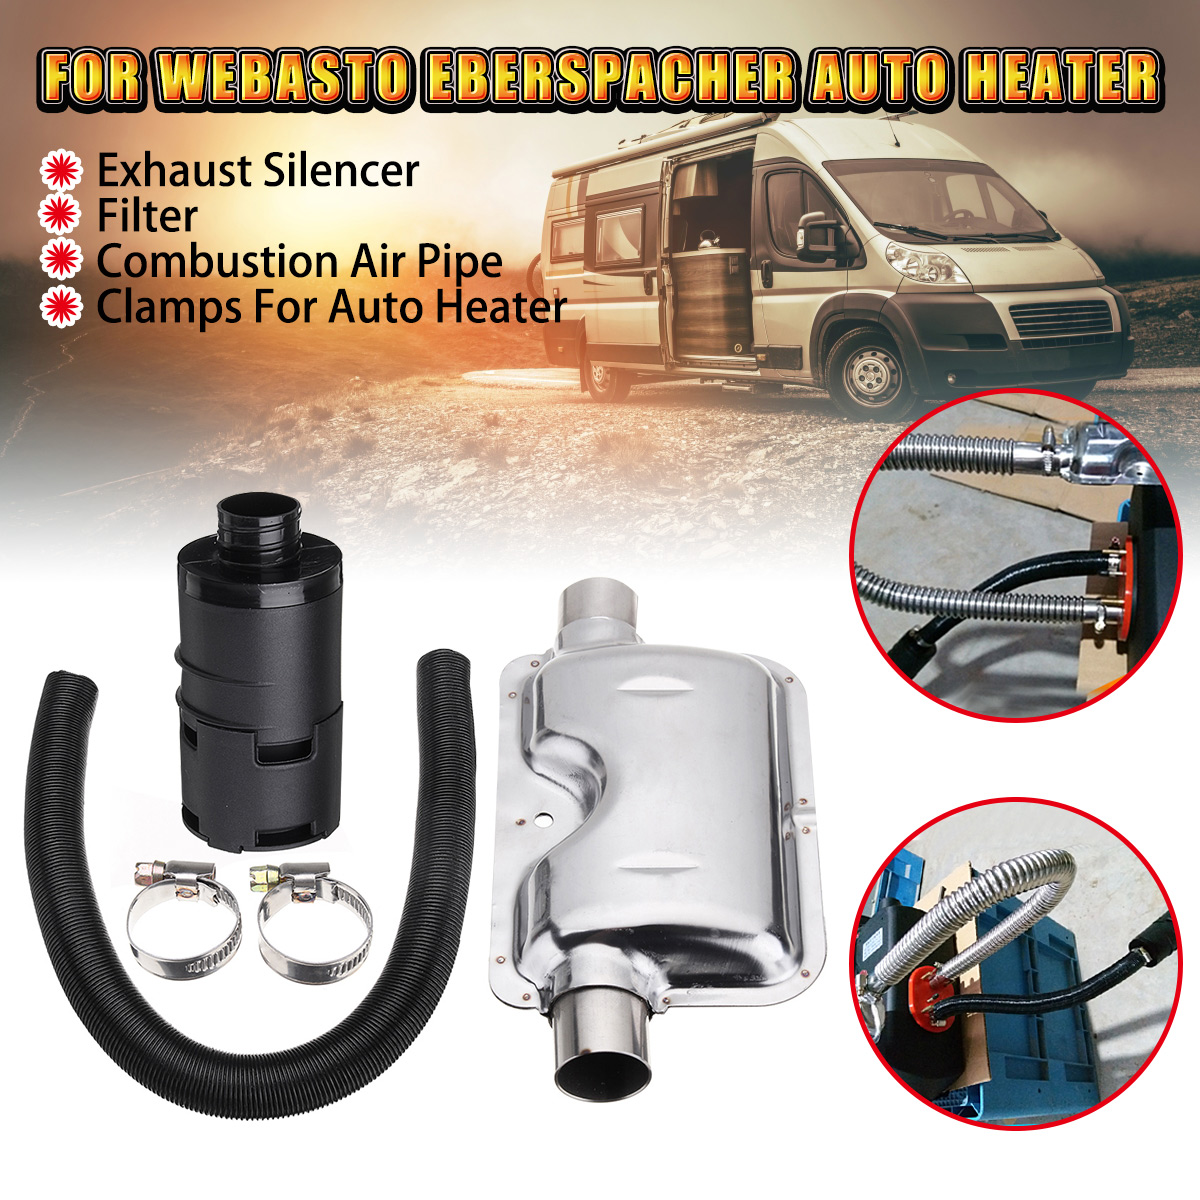 24mm Exhaust Silencer + 25mm Intake Filter + Induction Pipe Hose For Auto Car Air Diesel Heater